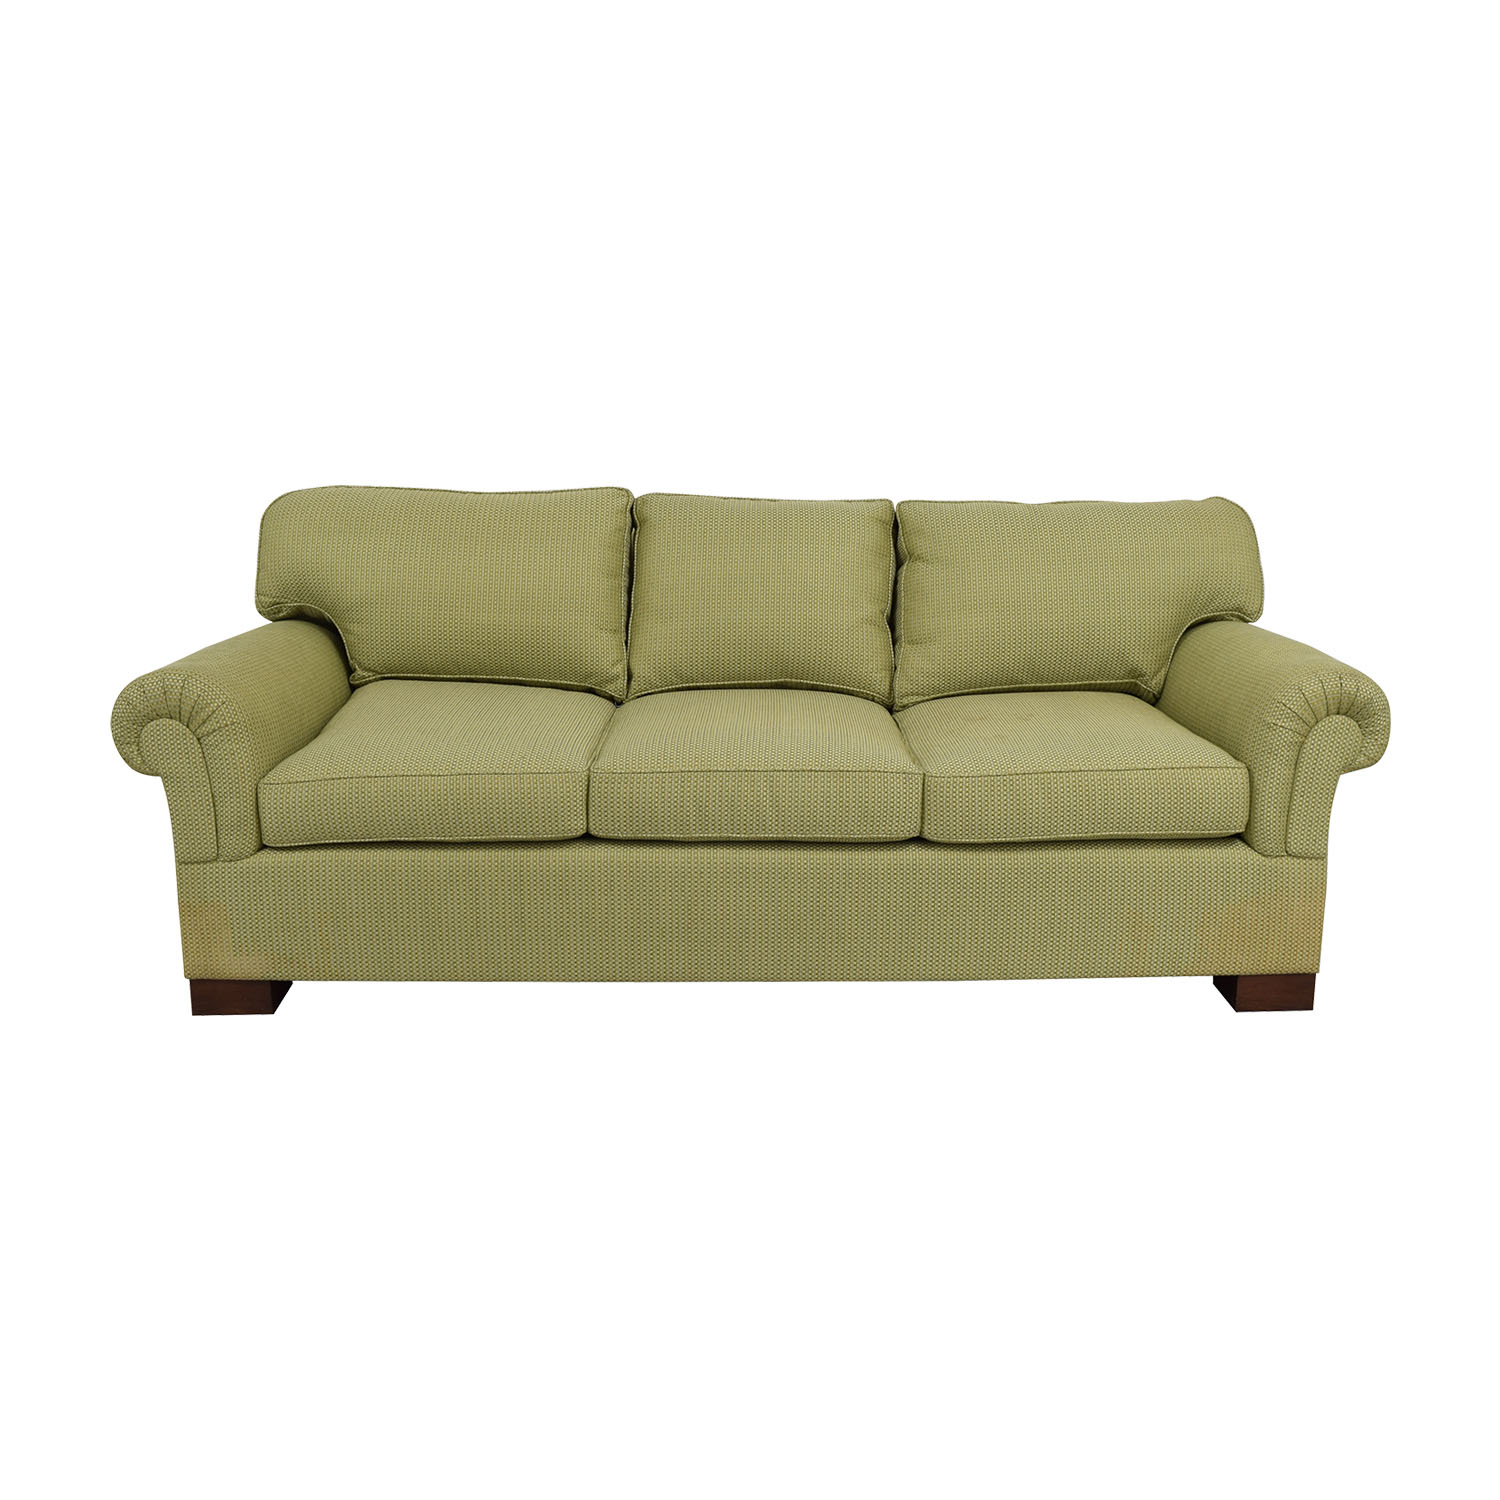 shop Furniture Masters Green Three Seater Sofa Furniture Masters